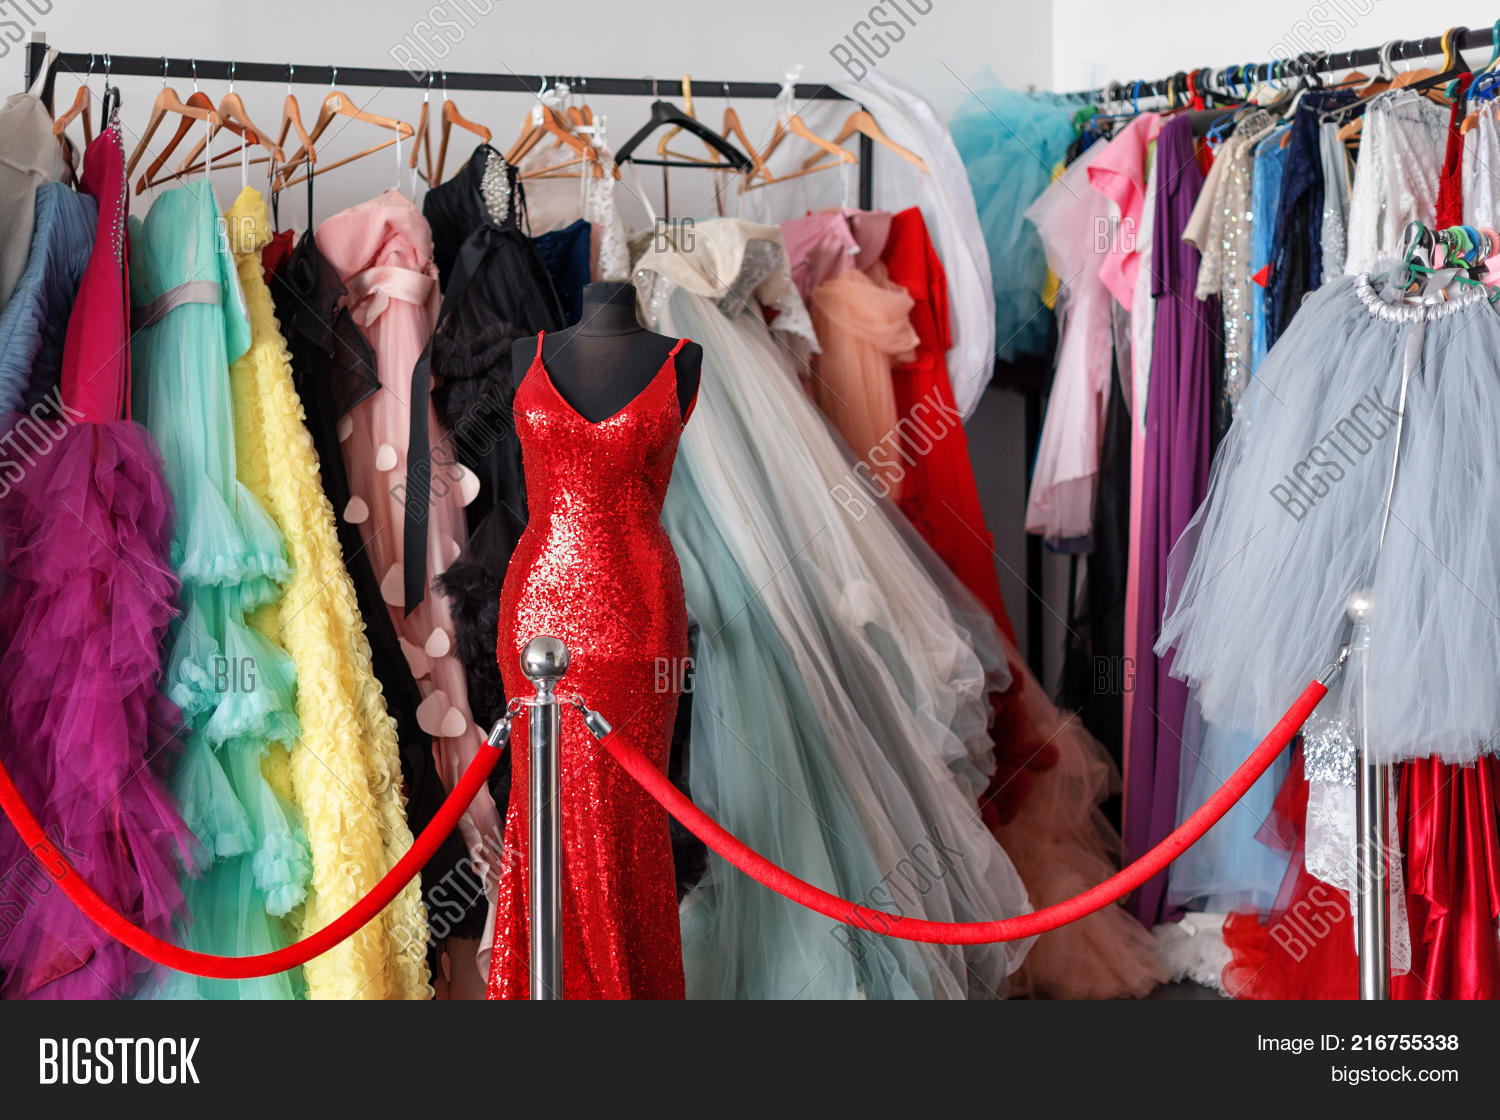 Many Ladies Evening Image & Photo (Free Trial) | Bigstock